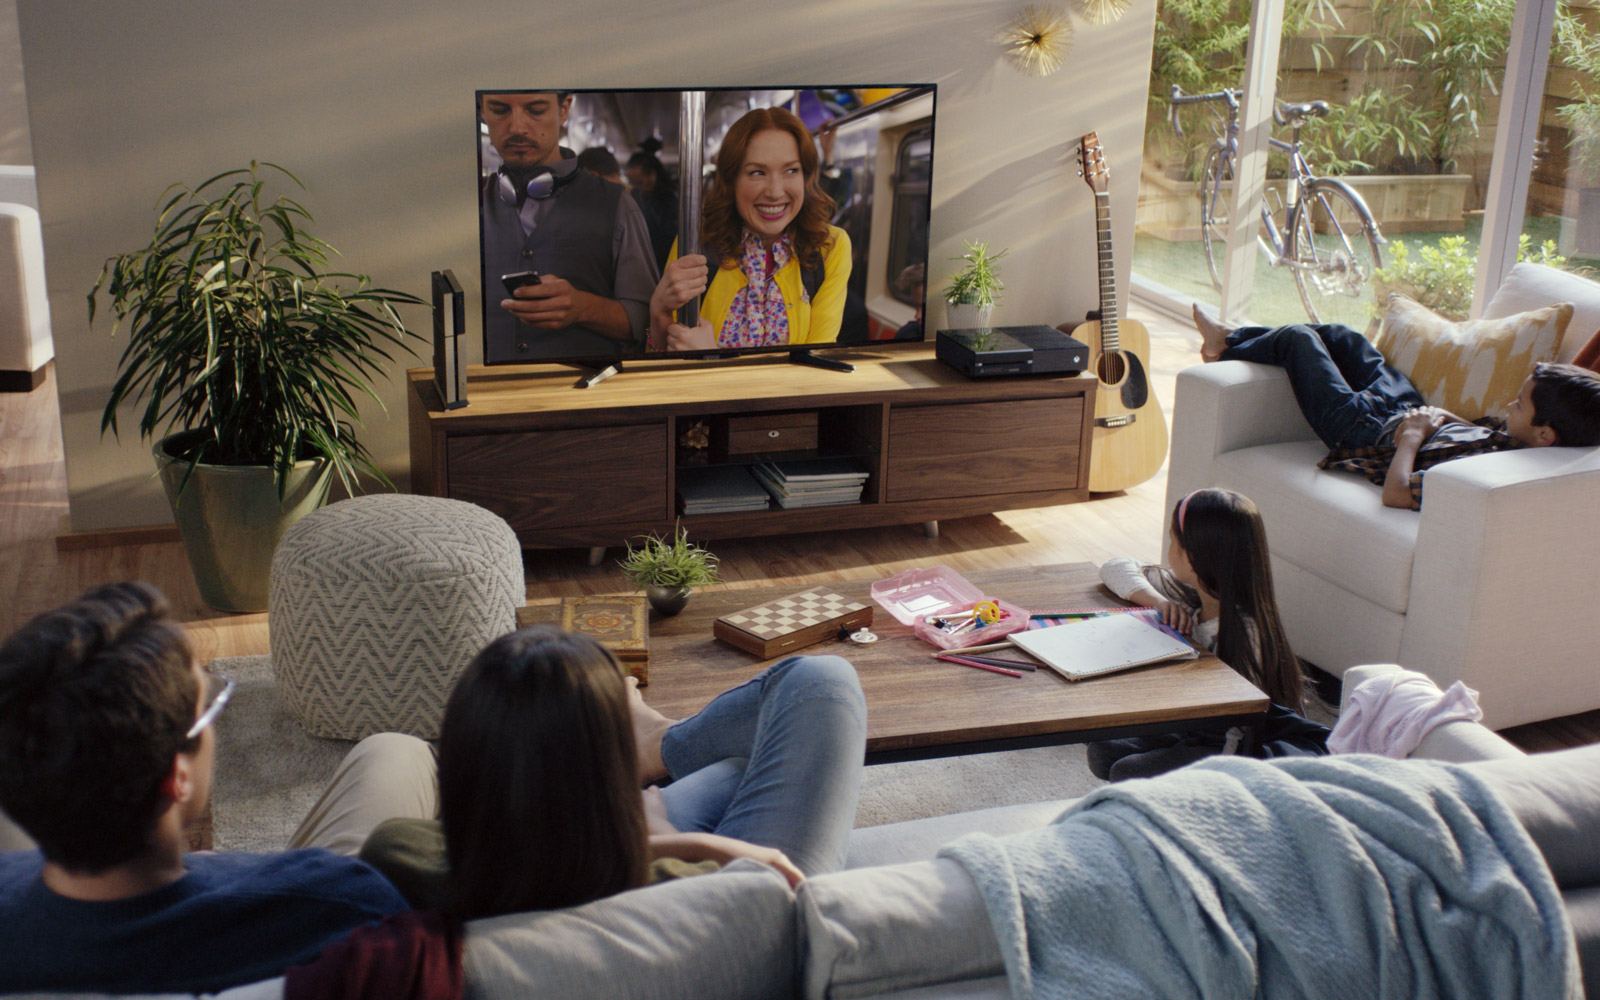 Family of four watching Unbreakable Kimmy Schmidt in their family room